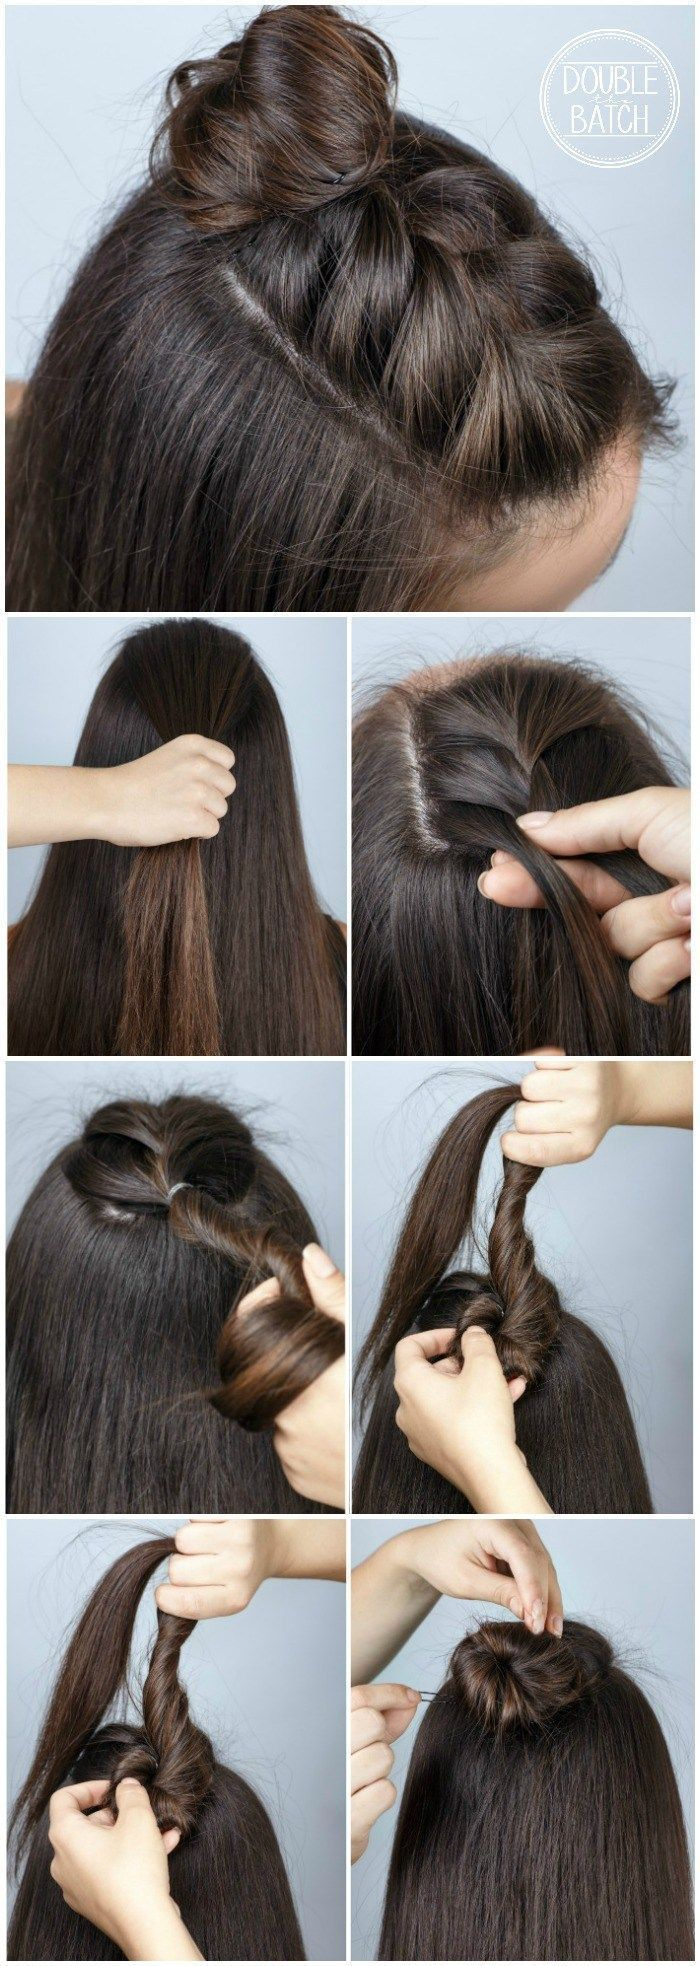 DIY Half Braid Hairstyle Tutorial, a simple and quick hair idea for girls